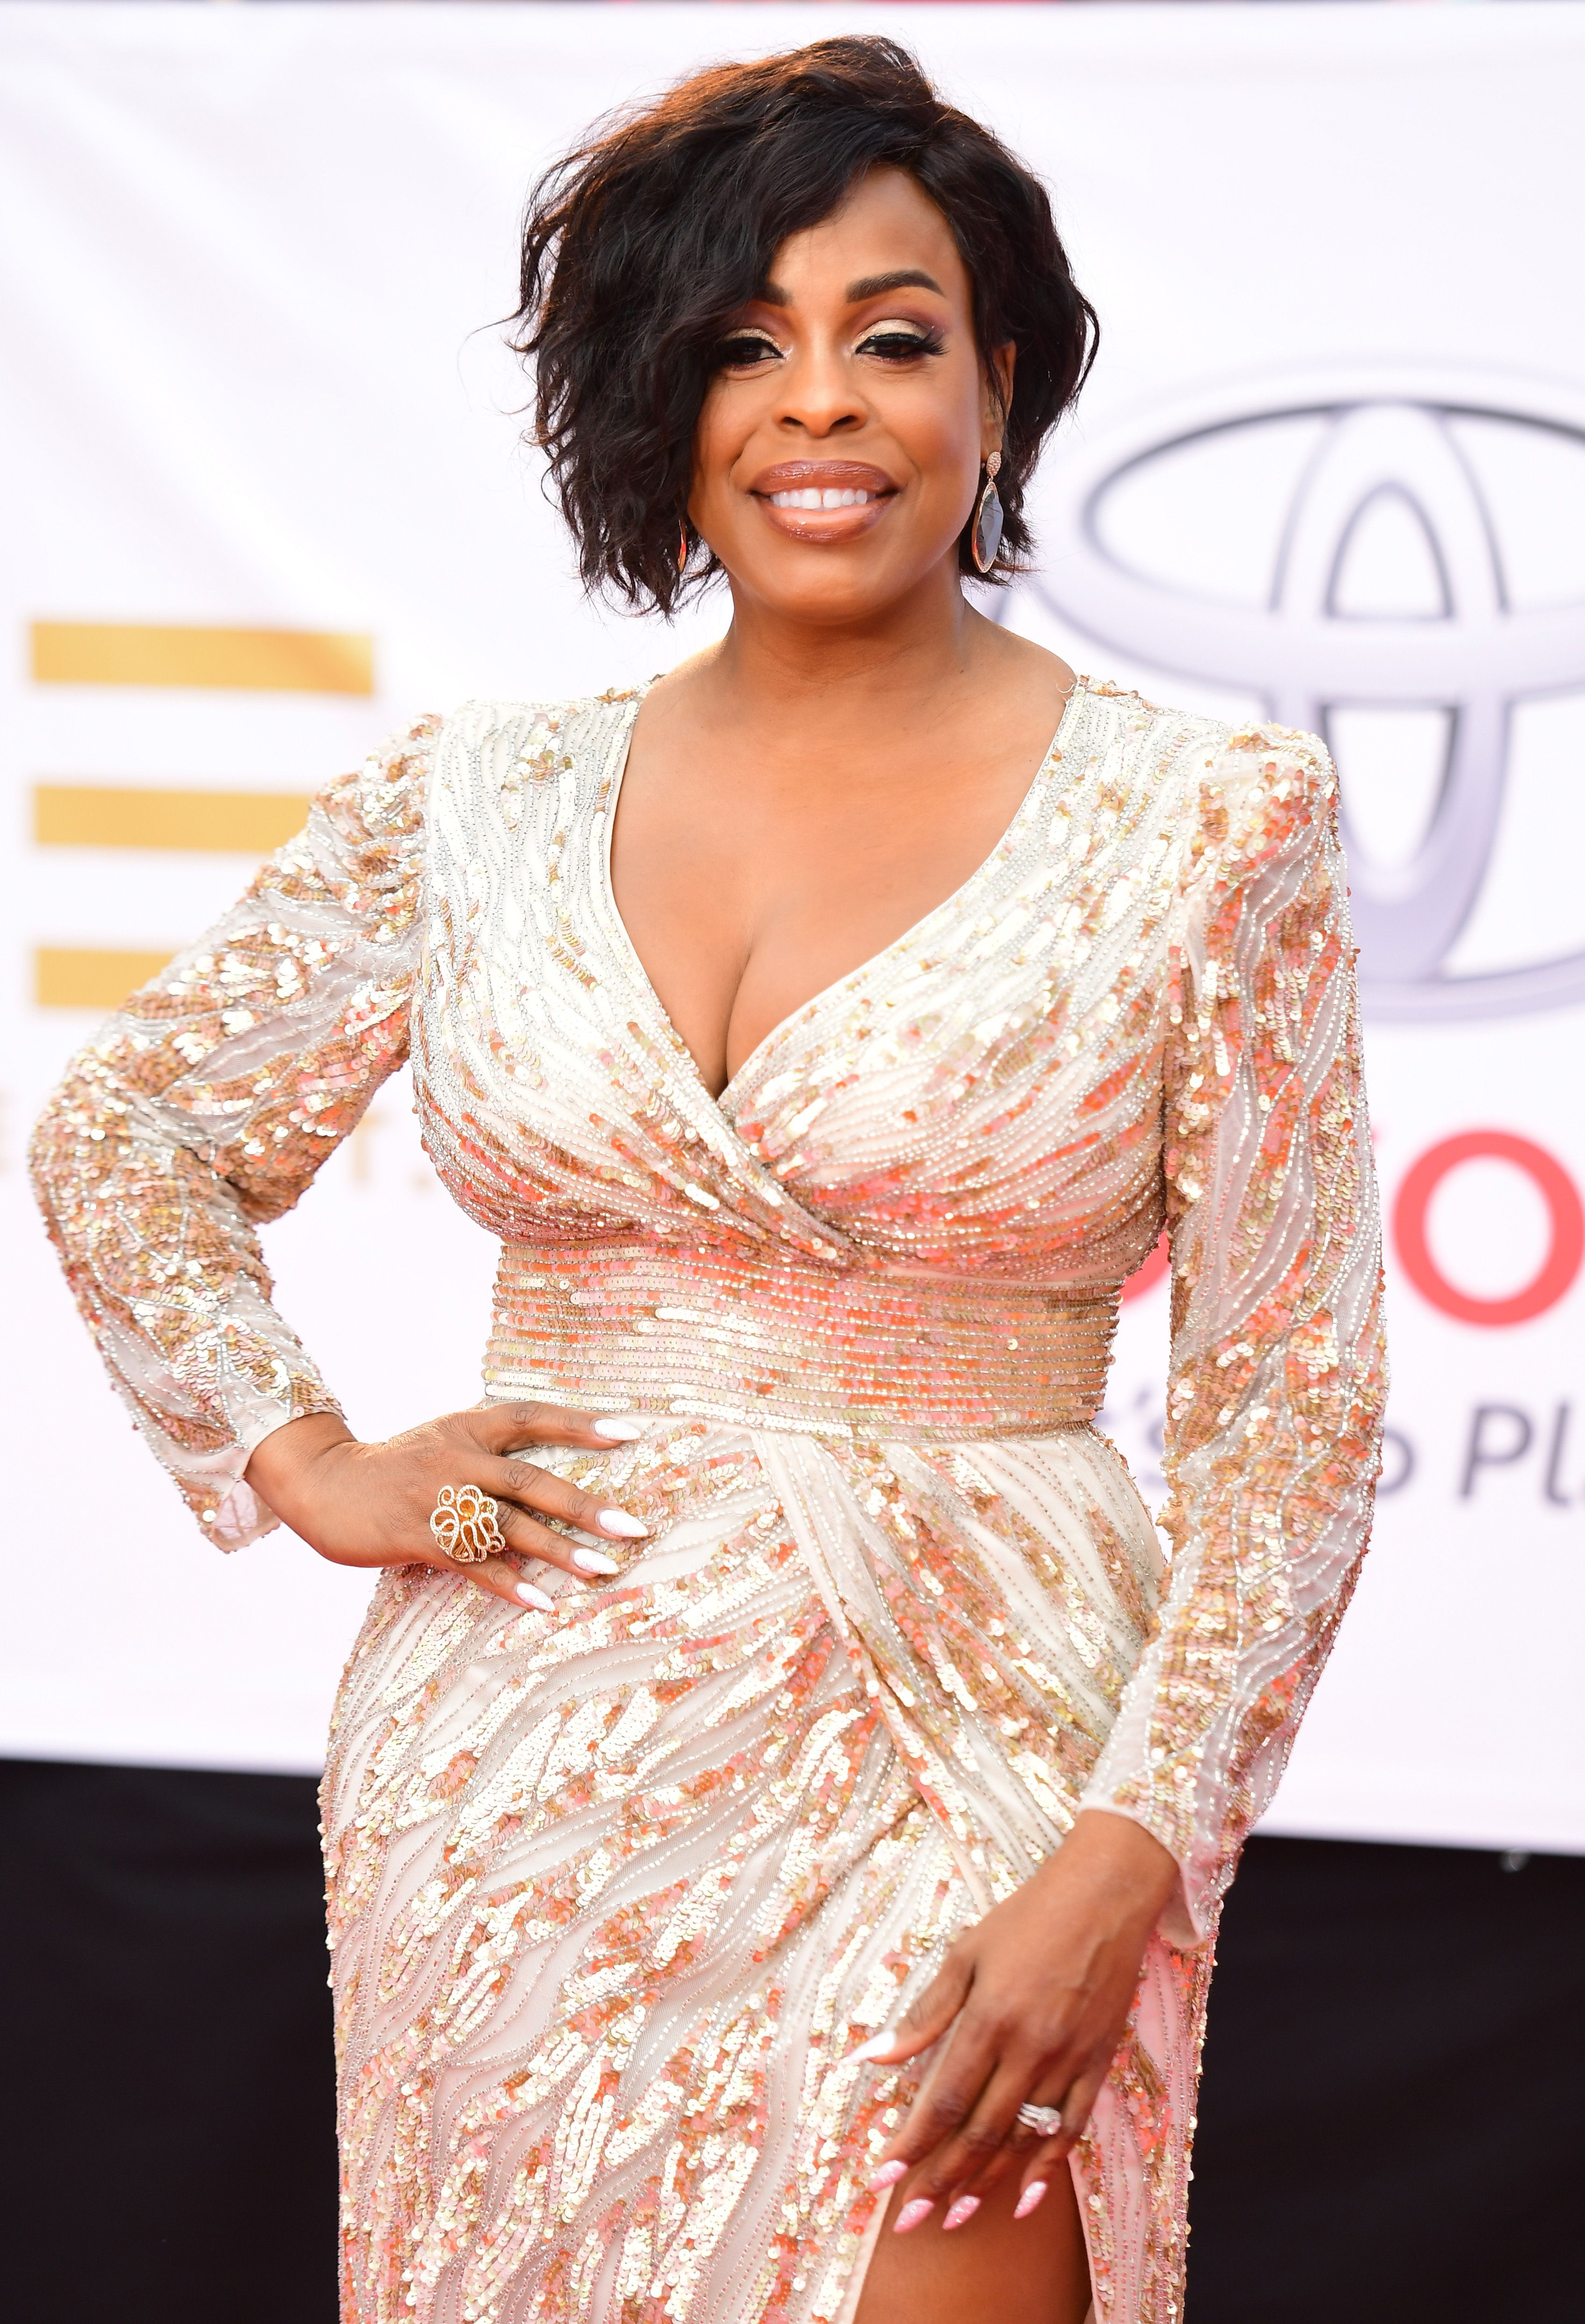 Niecy Nash at the 49th NAACP Image Awards on January 15, 2018 in Pasadena, California. | Source: Getty Images